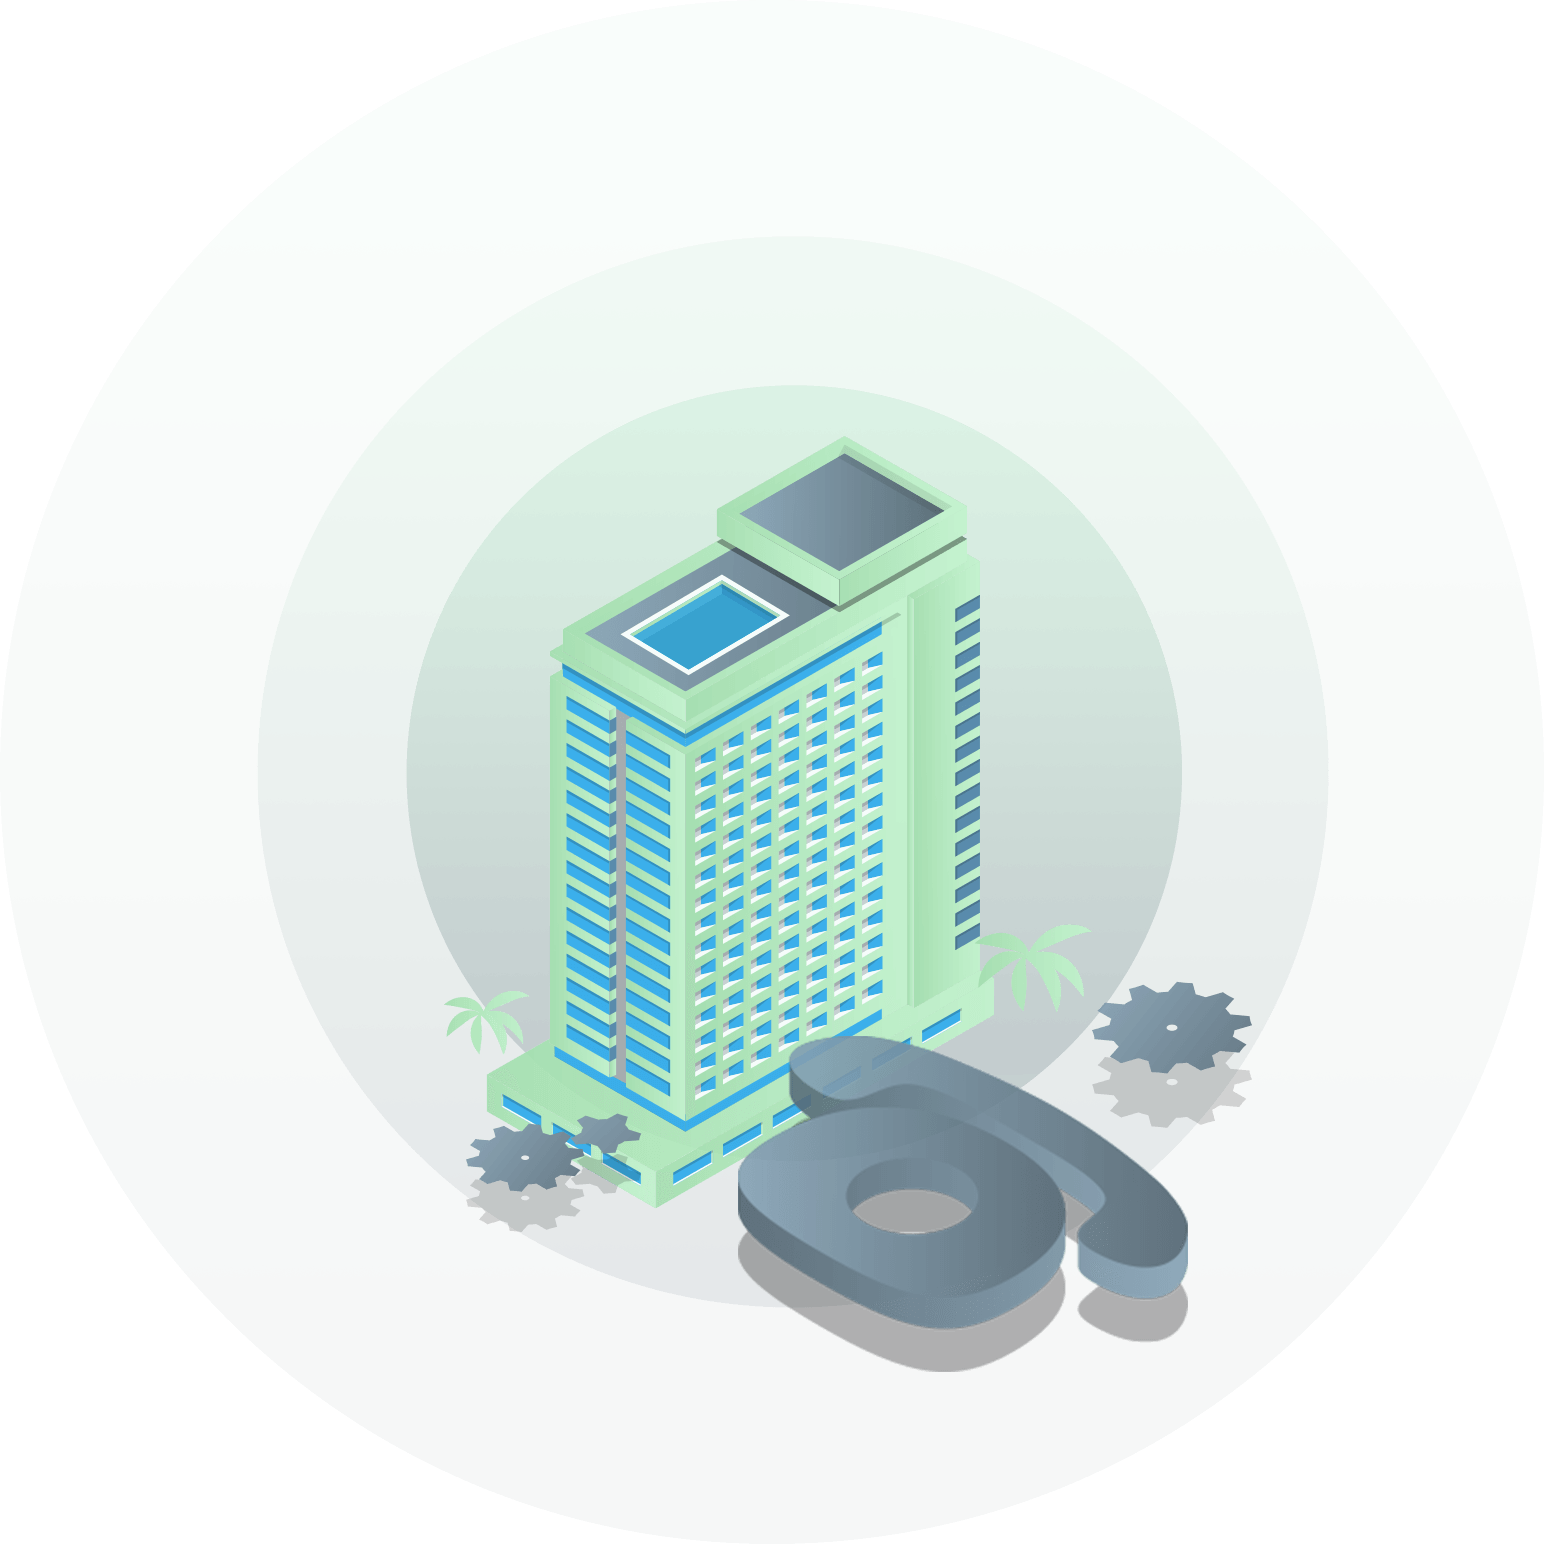 illustration of hotel building with phone system icon